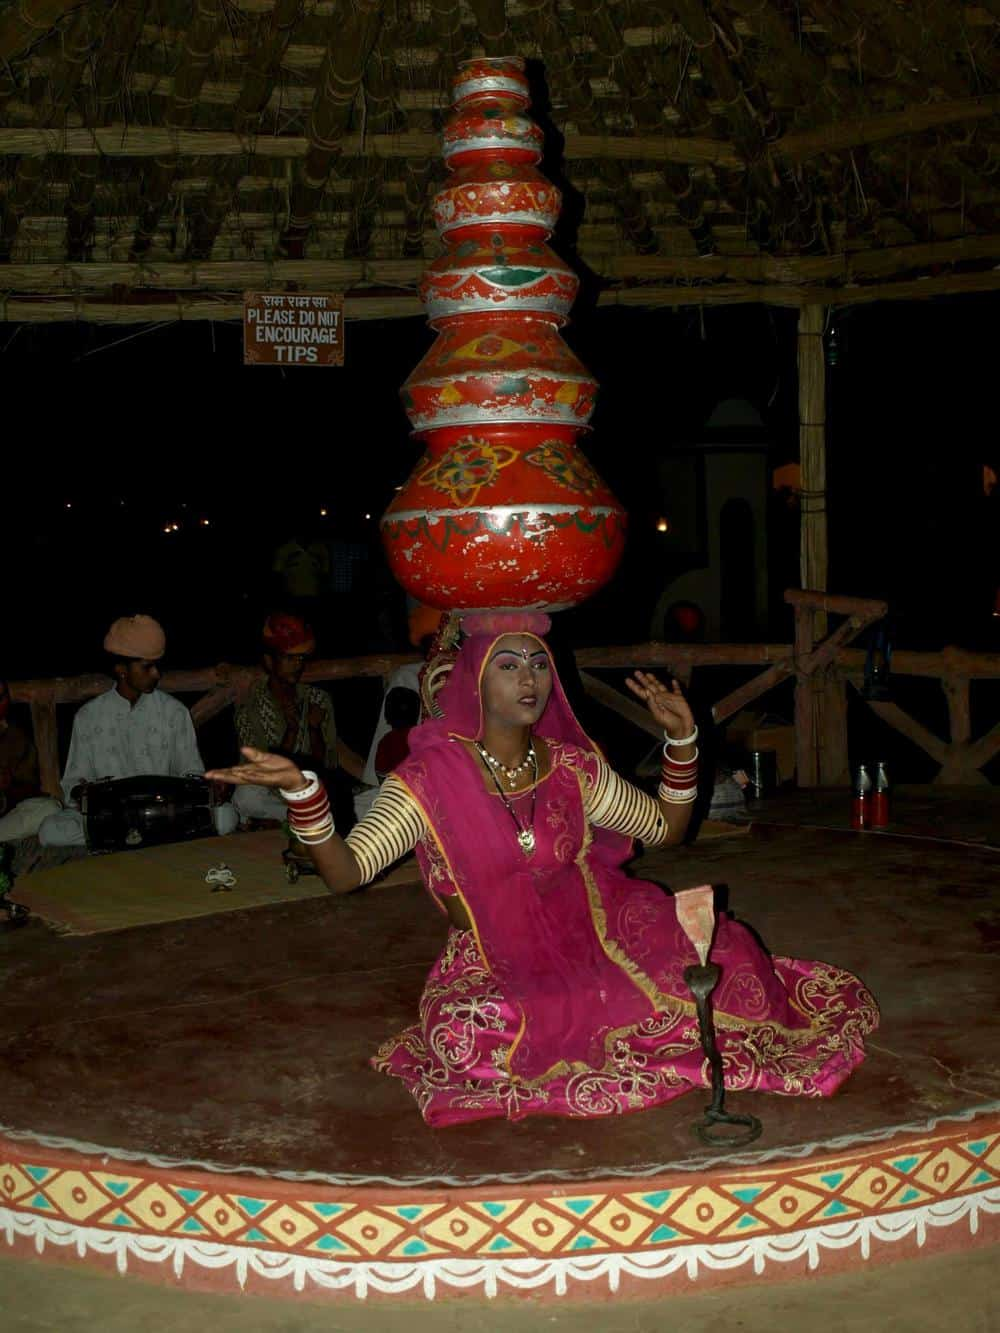 Rajasthan (Jaipur), a day is dancing with pink dress.